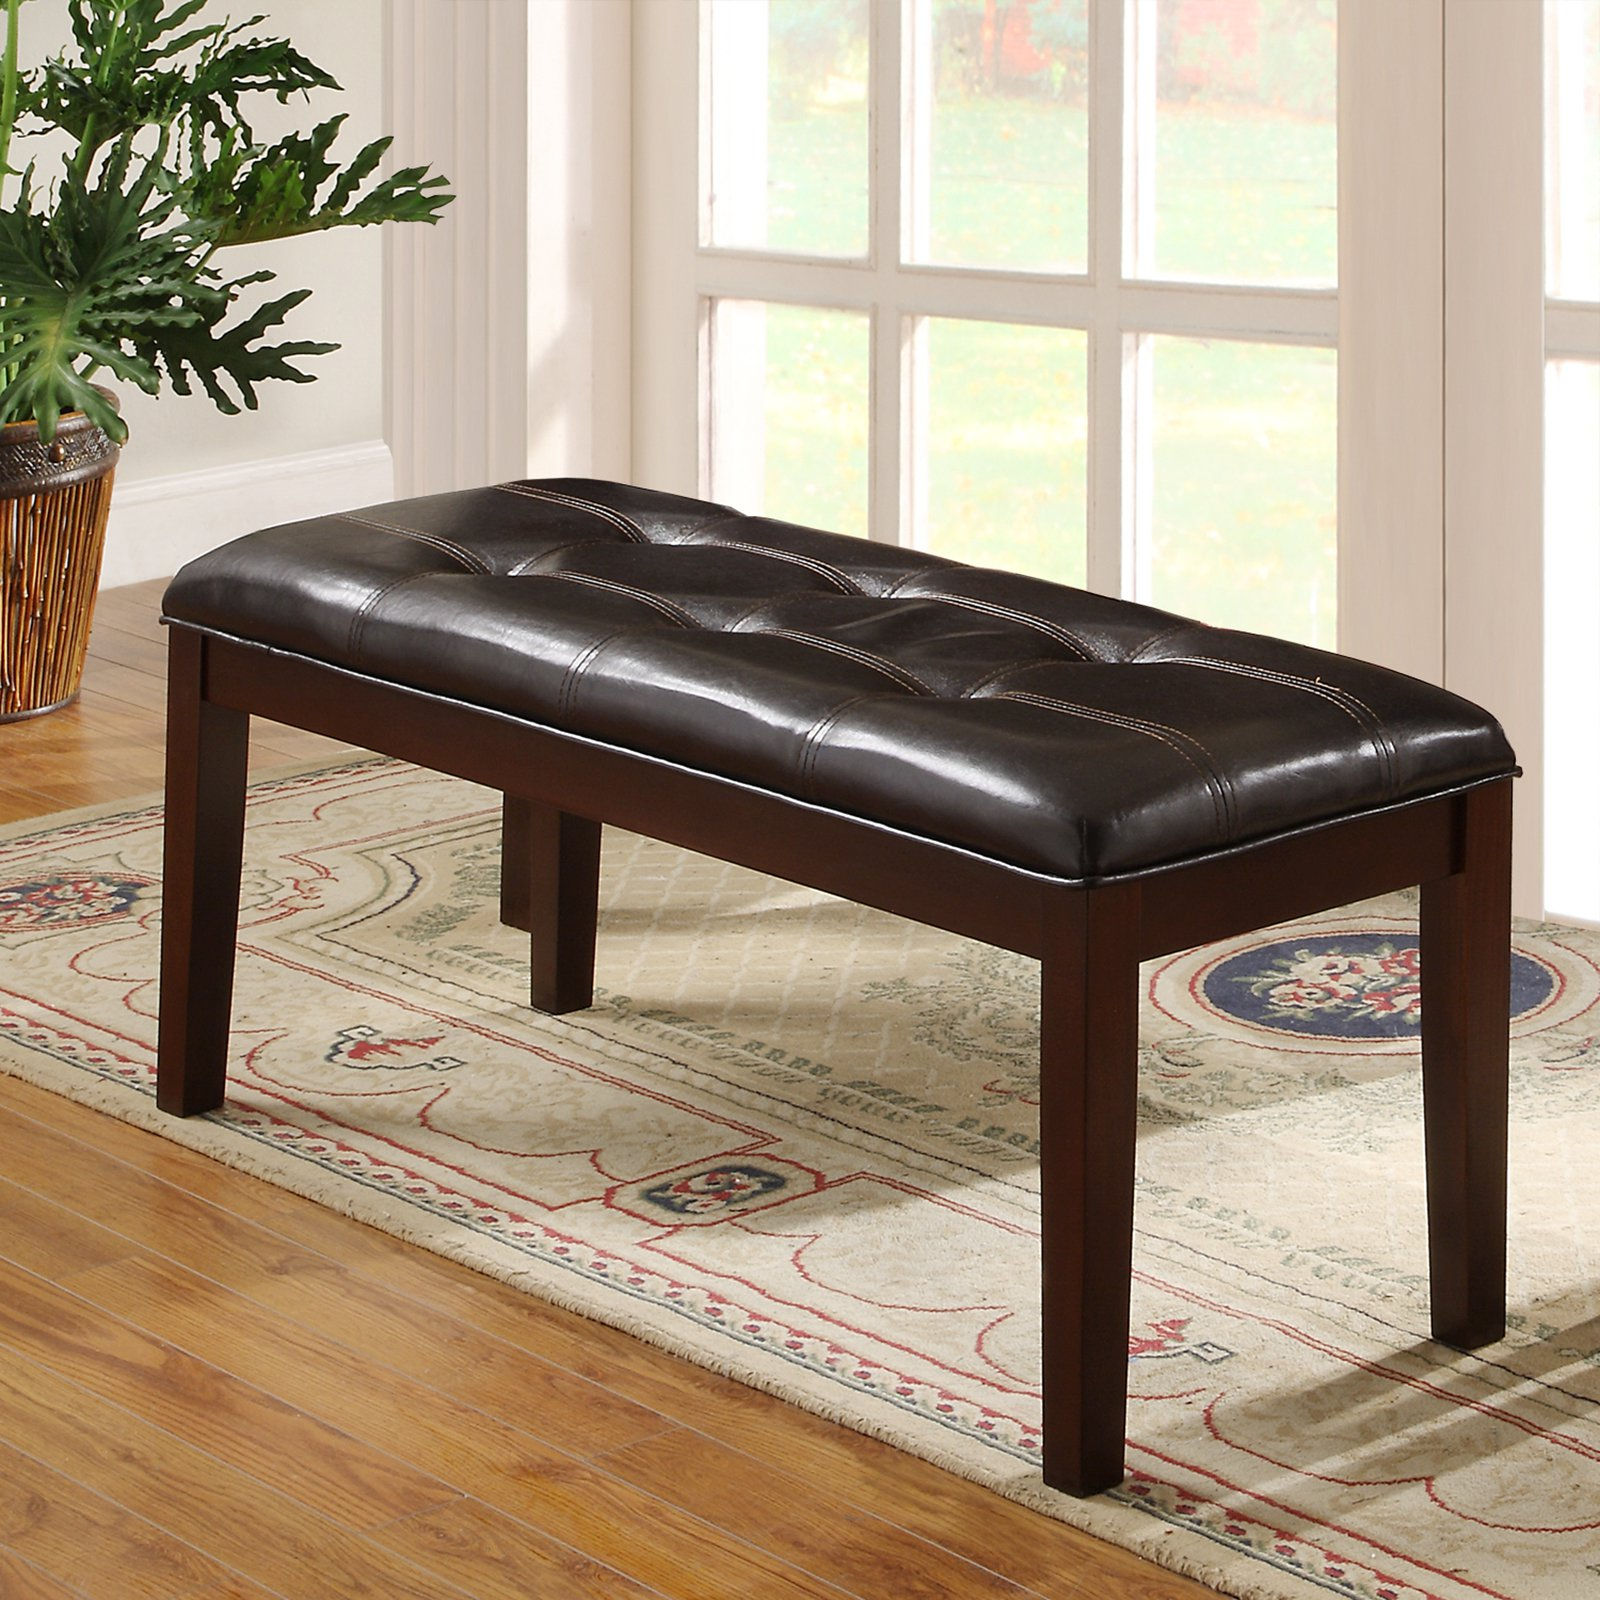 "Weston Home 49""W Tufted Bench, Espresso"